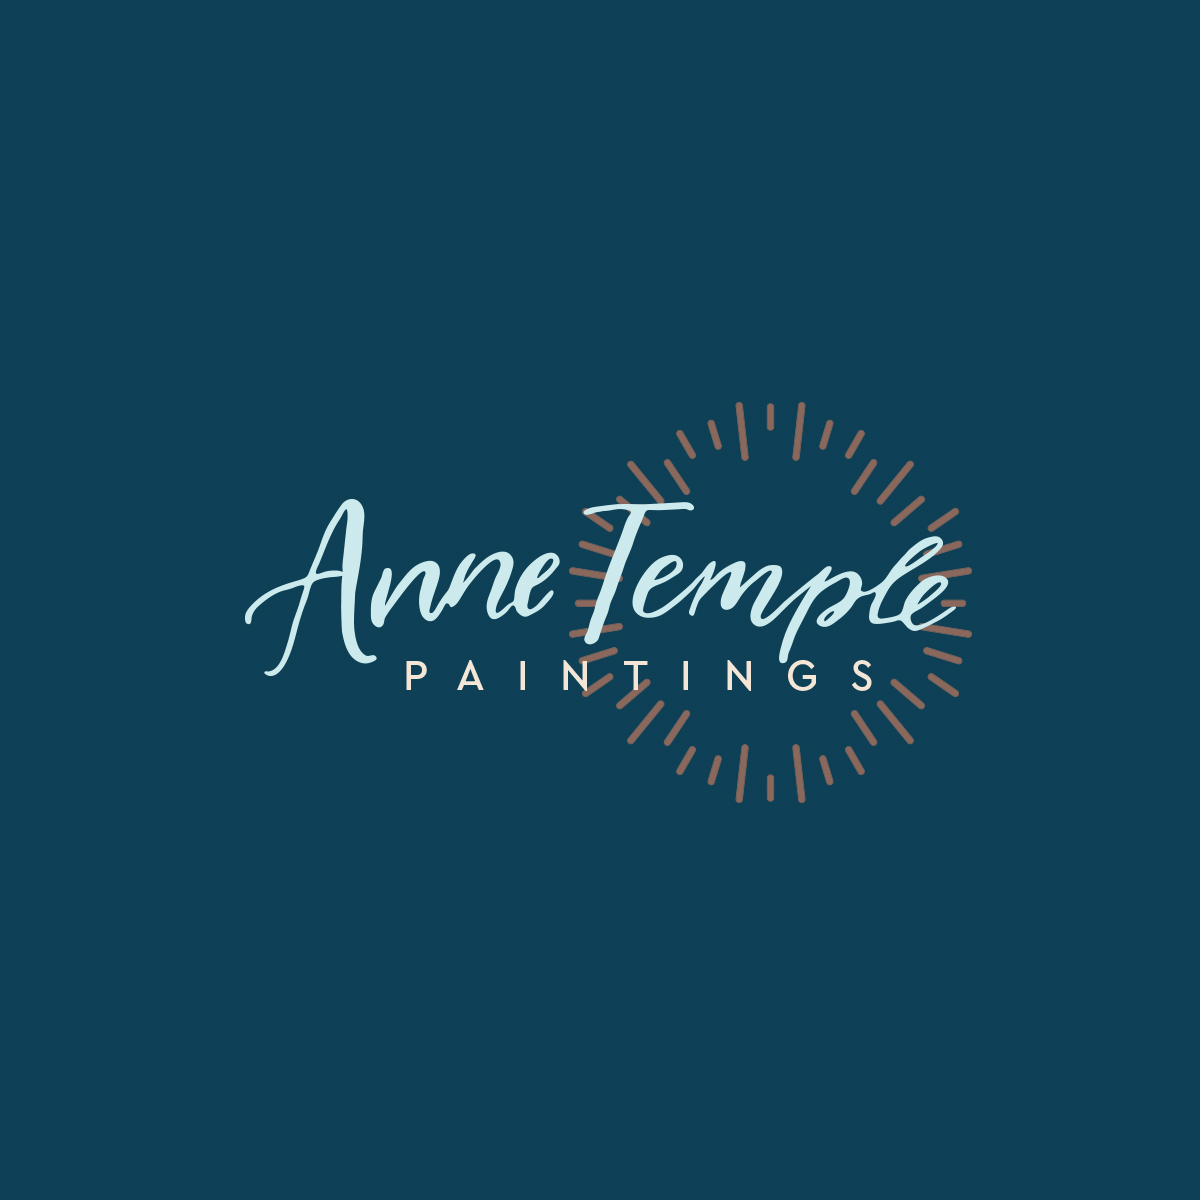 AnneTemple-posts3.jpg